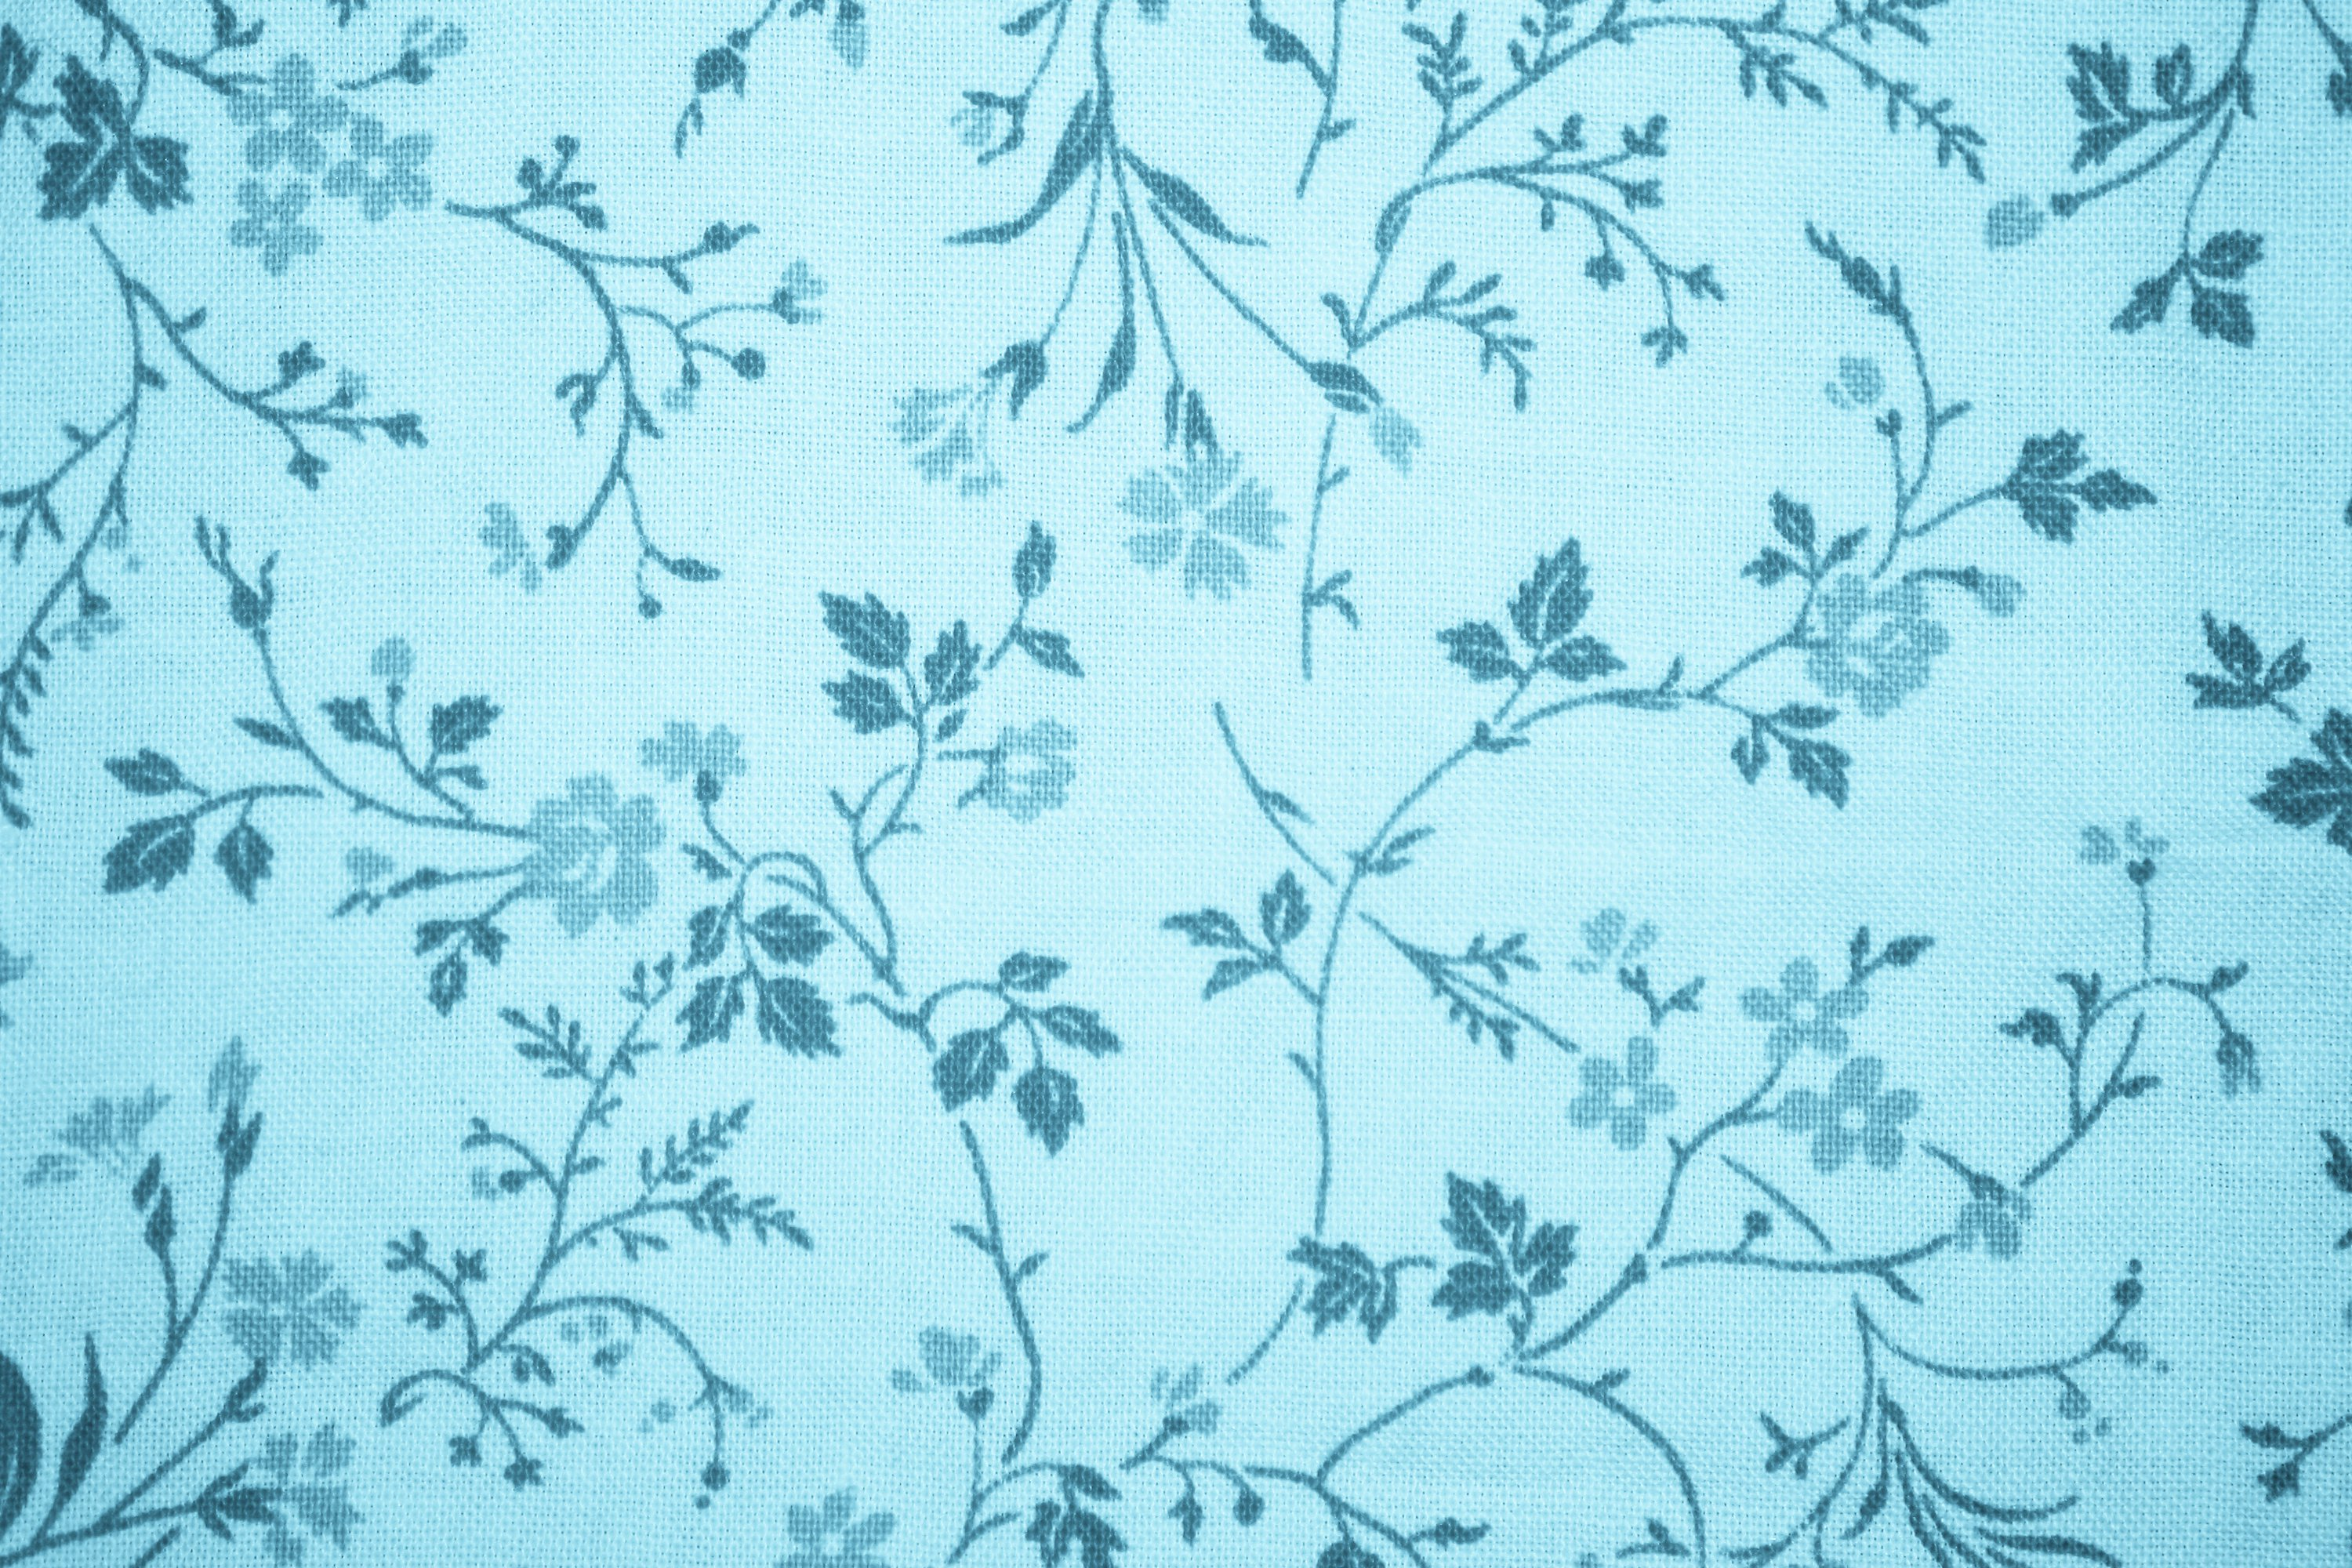 Light Blue Floral Print Fabric Texture